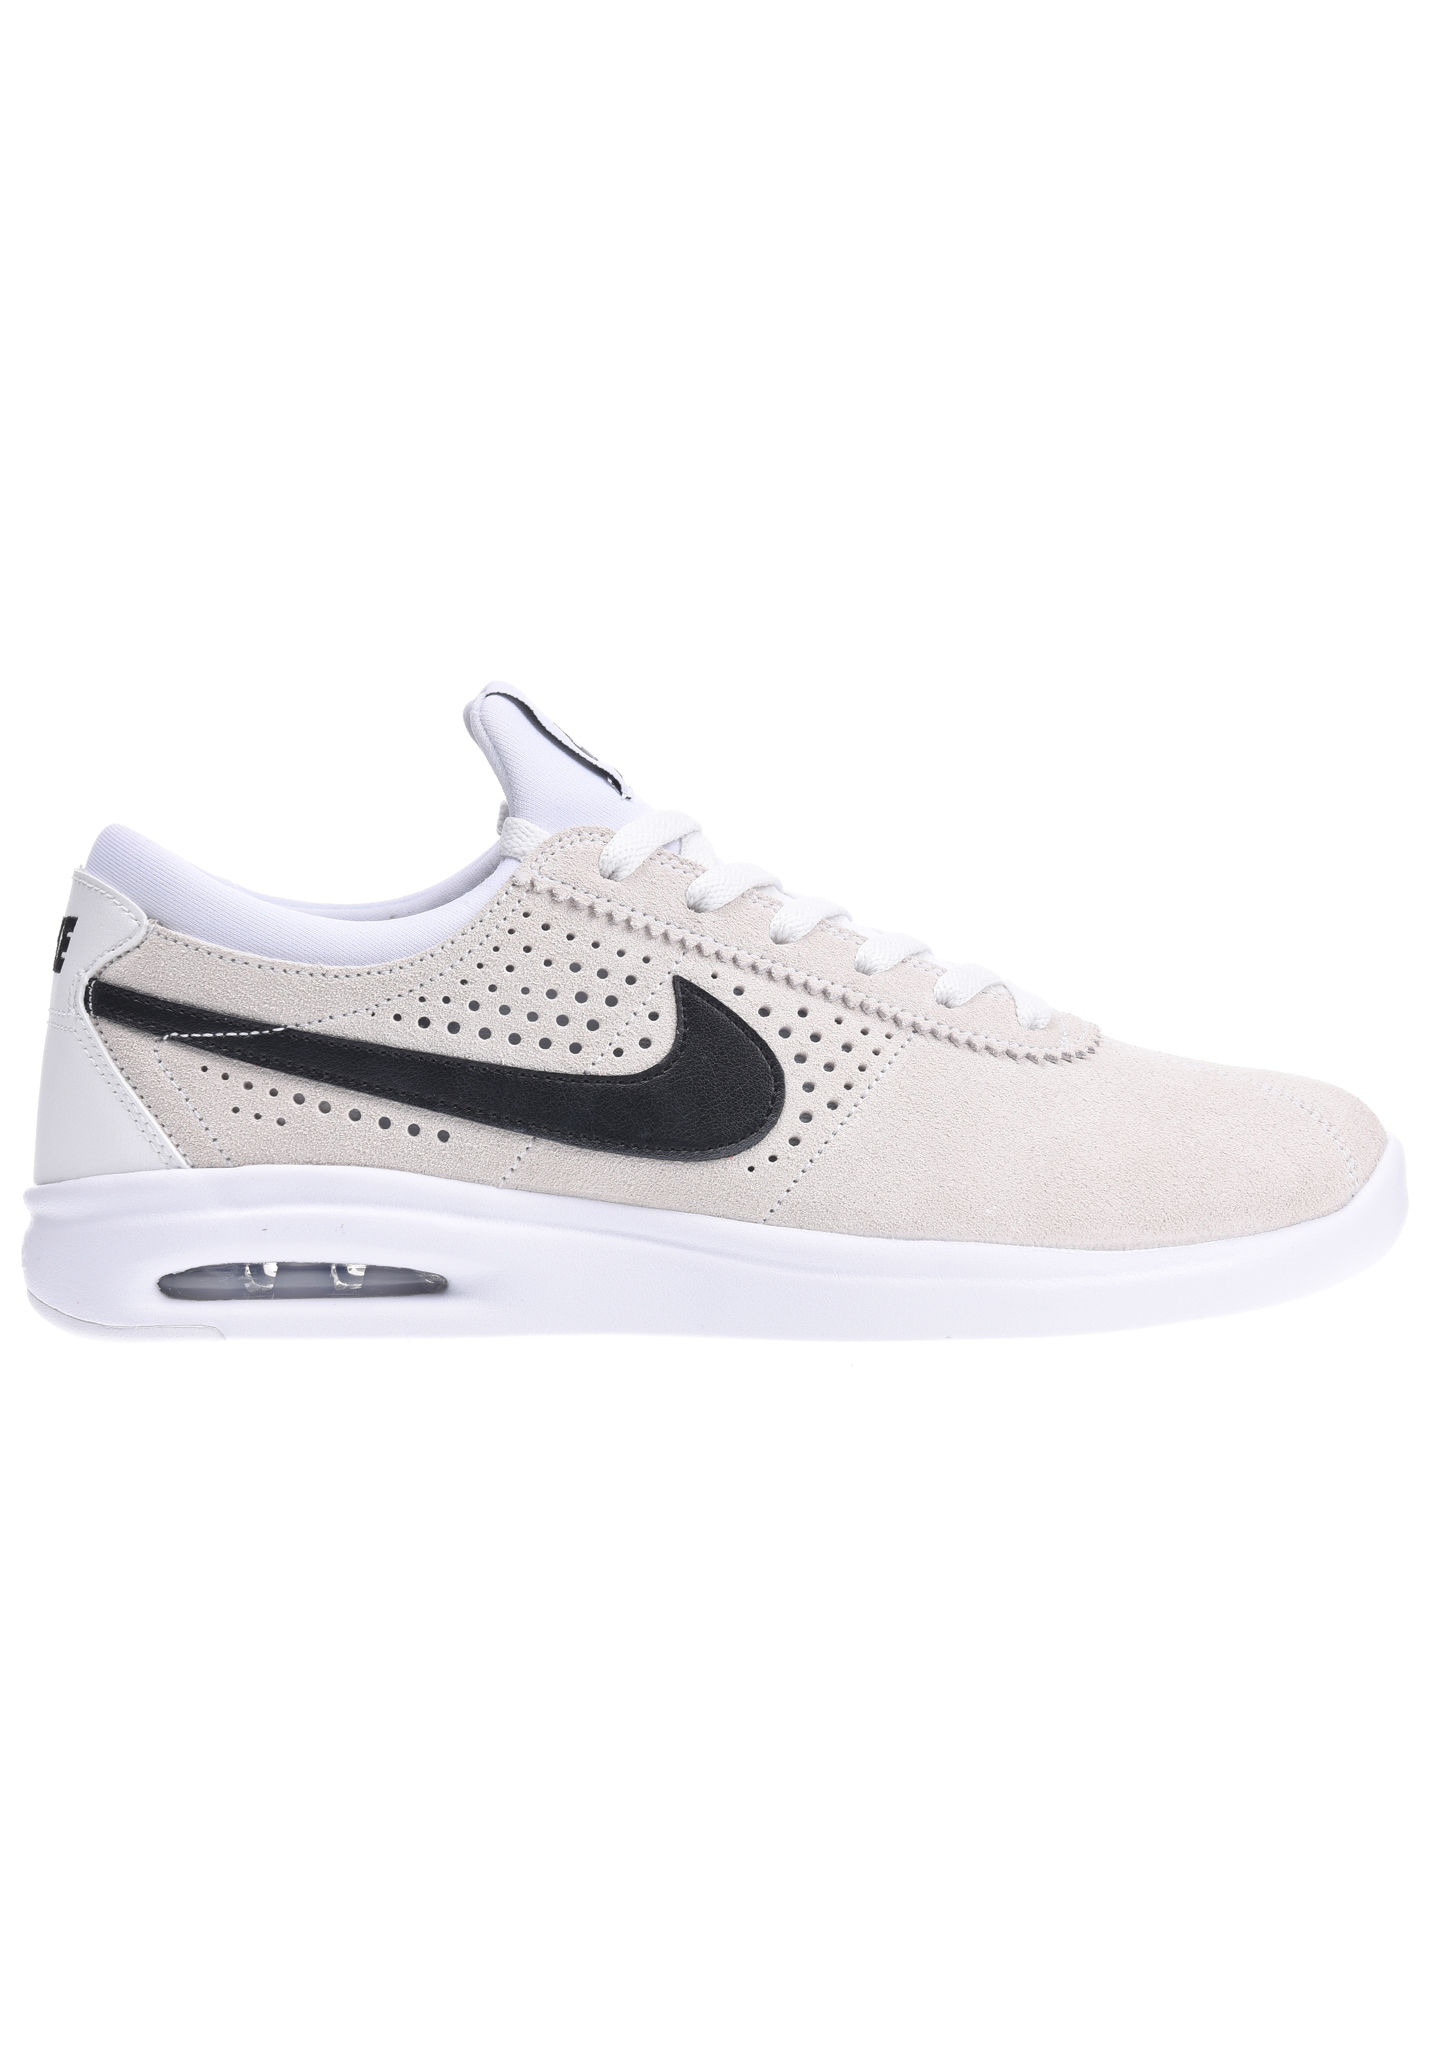 new style 94df4 e3698 NIKE SB Air Max Bruin Vapor - Sneakers voor Heren - Beige - Planet Sports